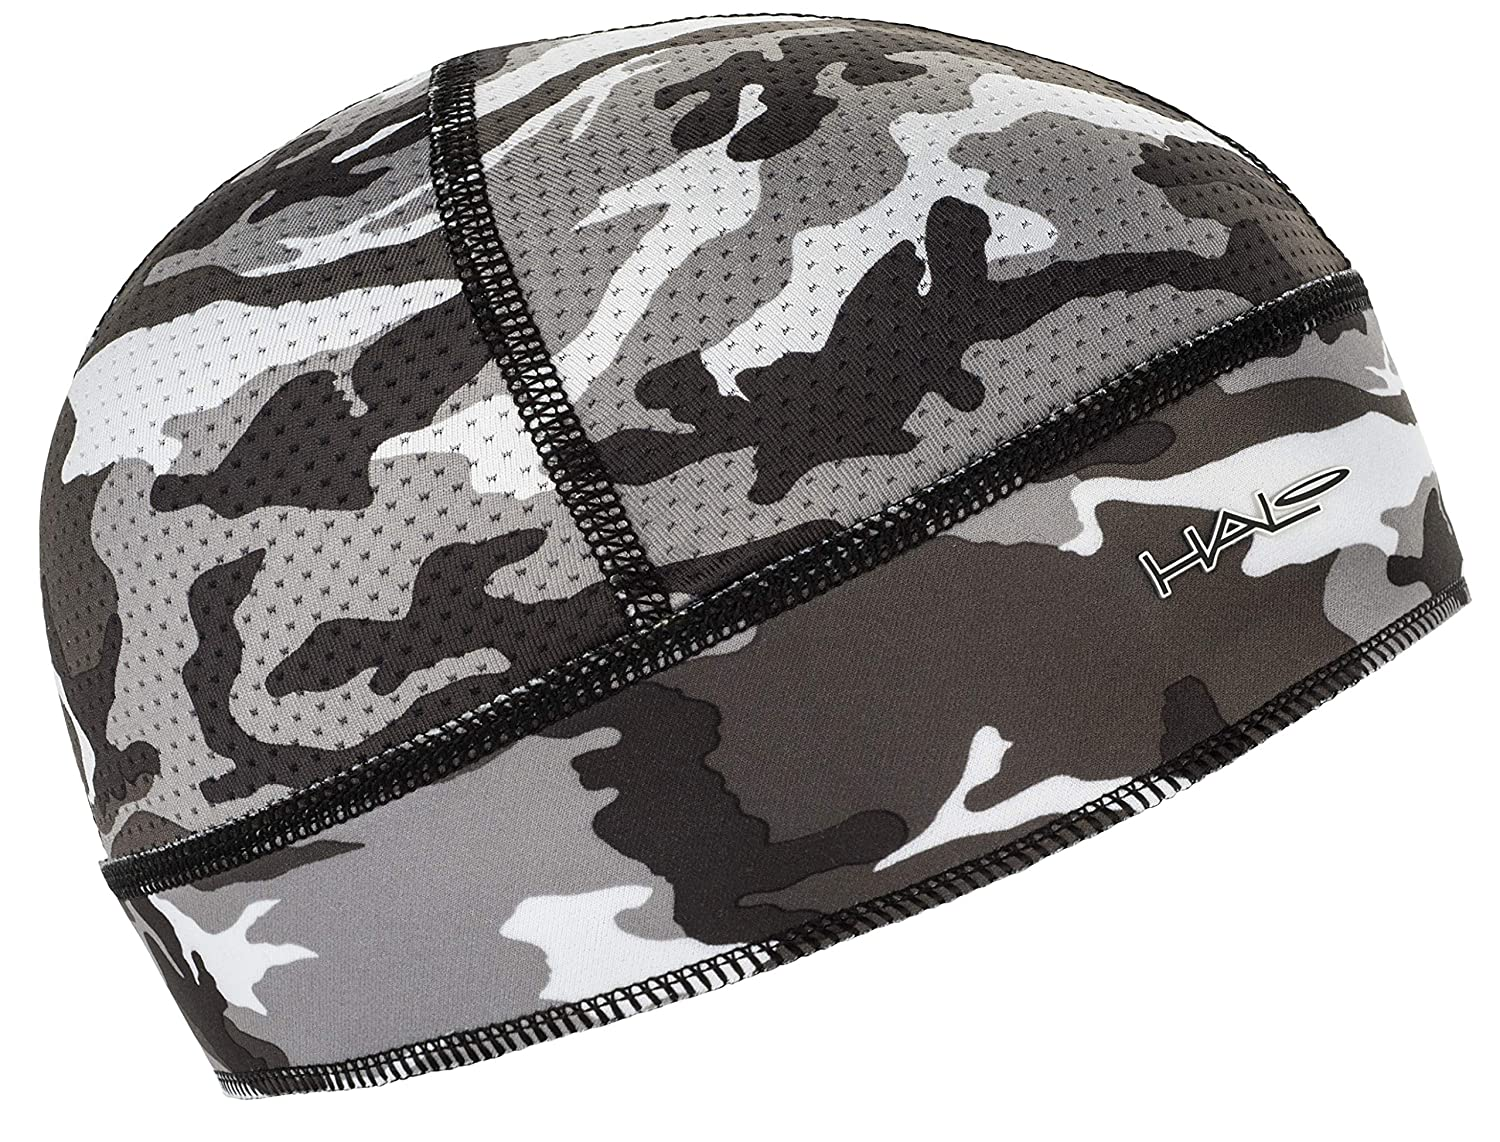 Halo Headband Skull Cap - The Ultimate High Performance Skull Cap